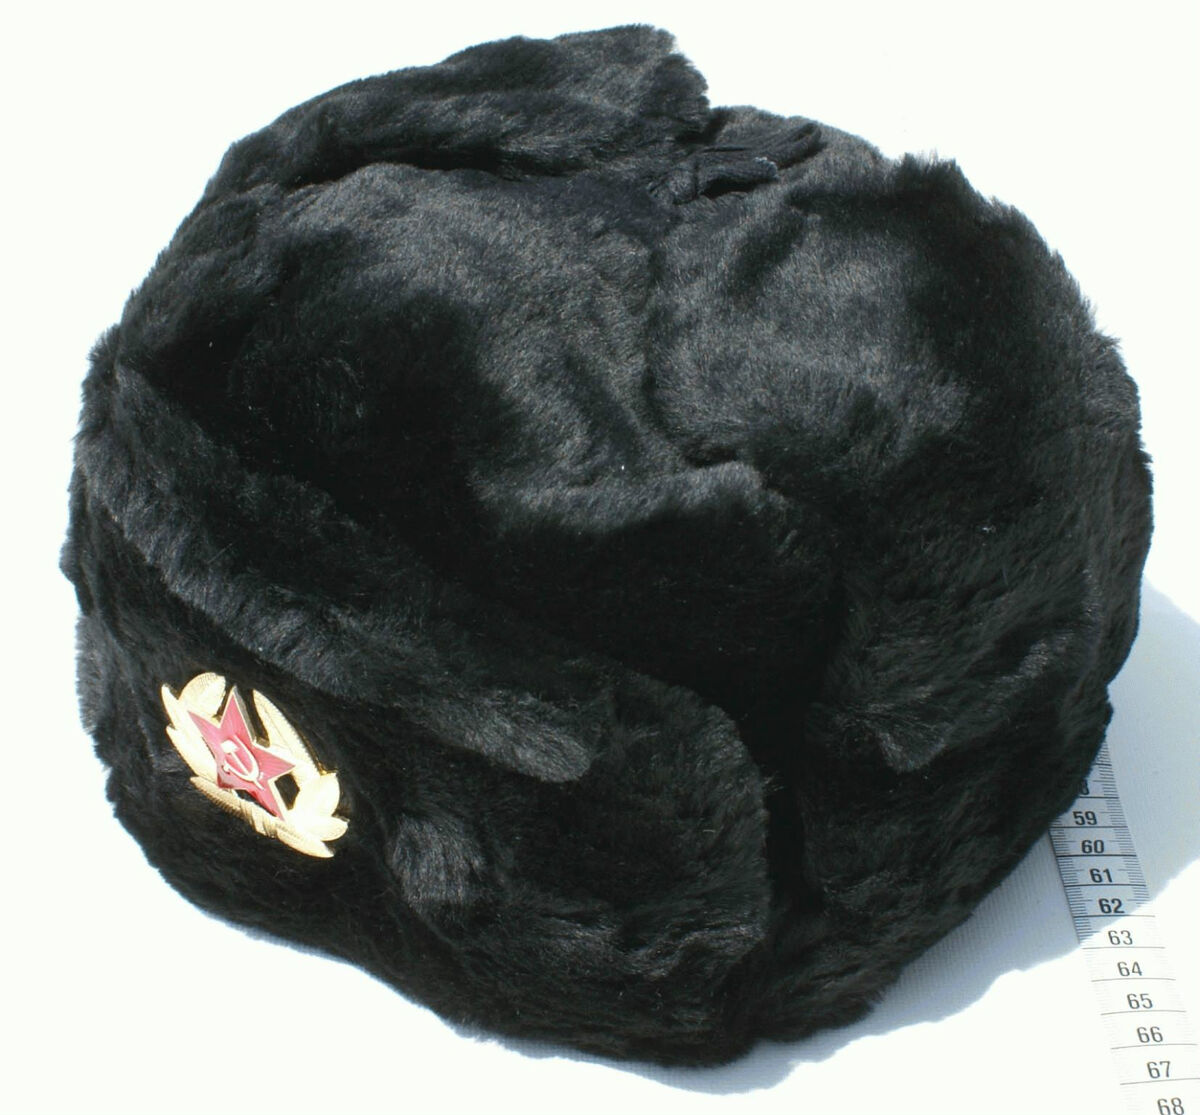 5b9dcaec84f Russian Soviet Black Military Ushanka Winter Hat Army Cold War USSR Emblem  Sign